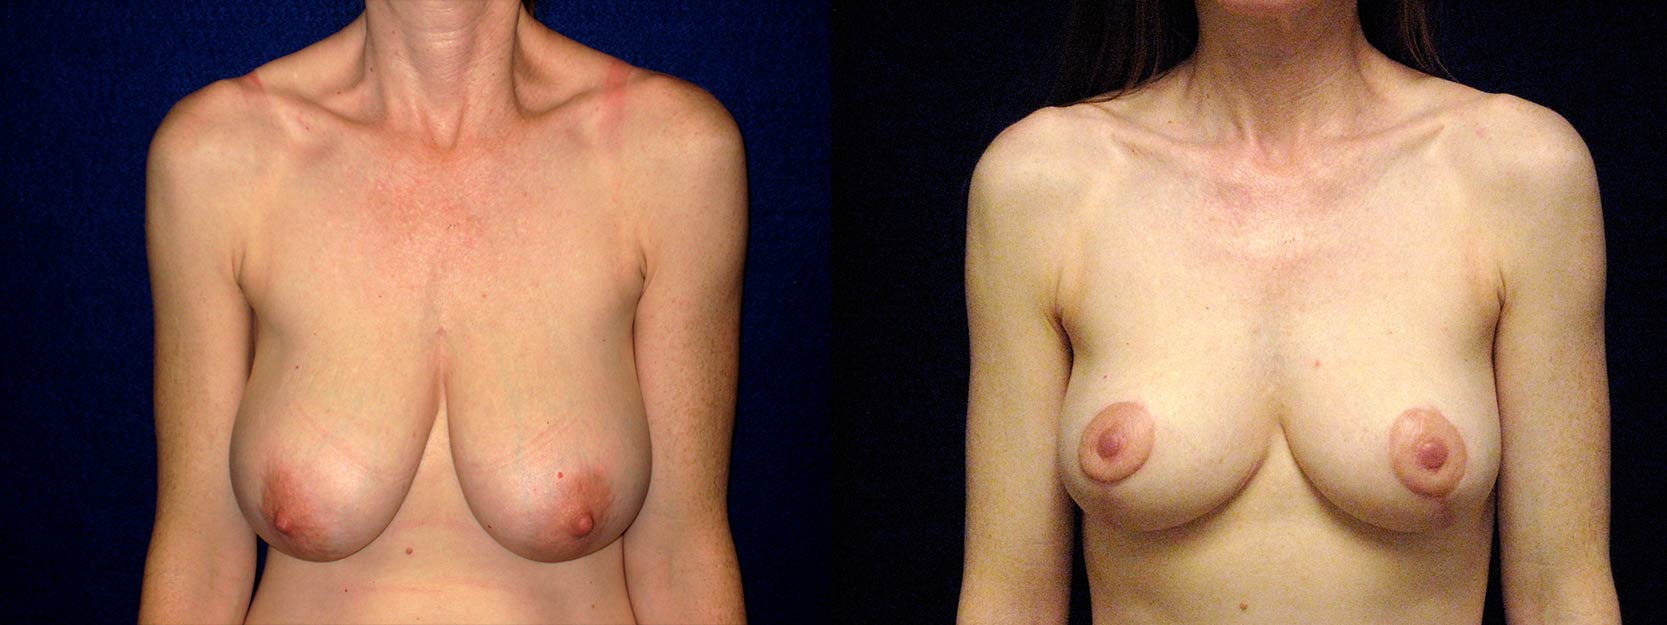 Frontal View - Breast Reduction and Lift